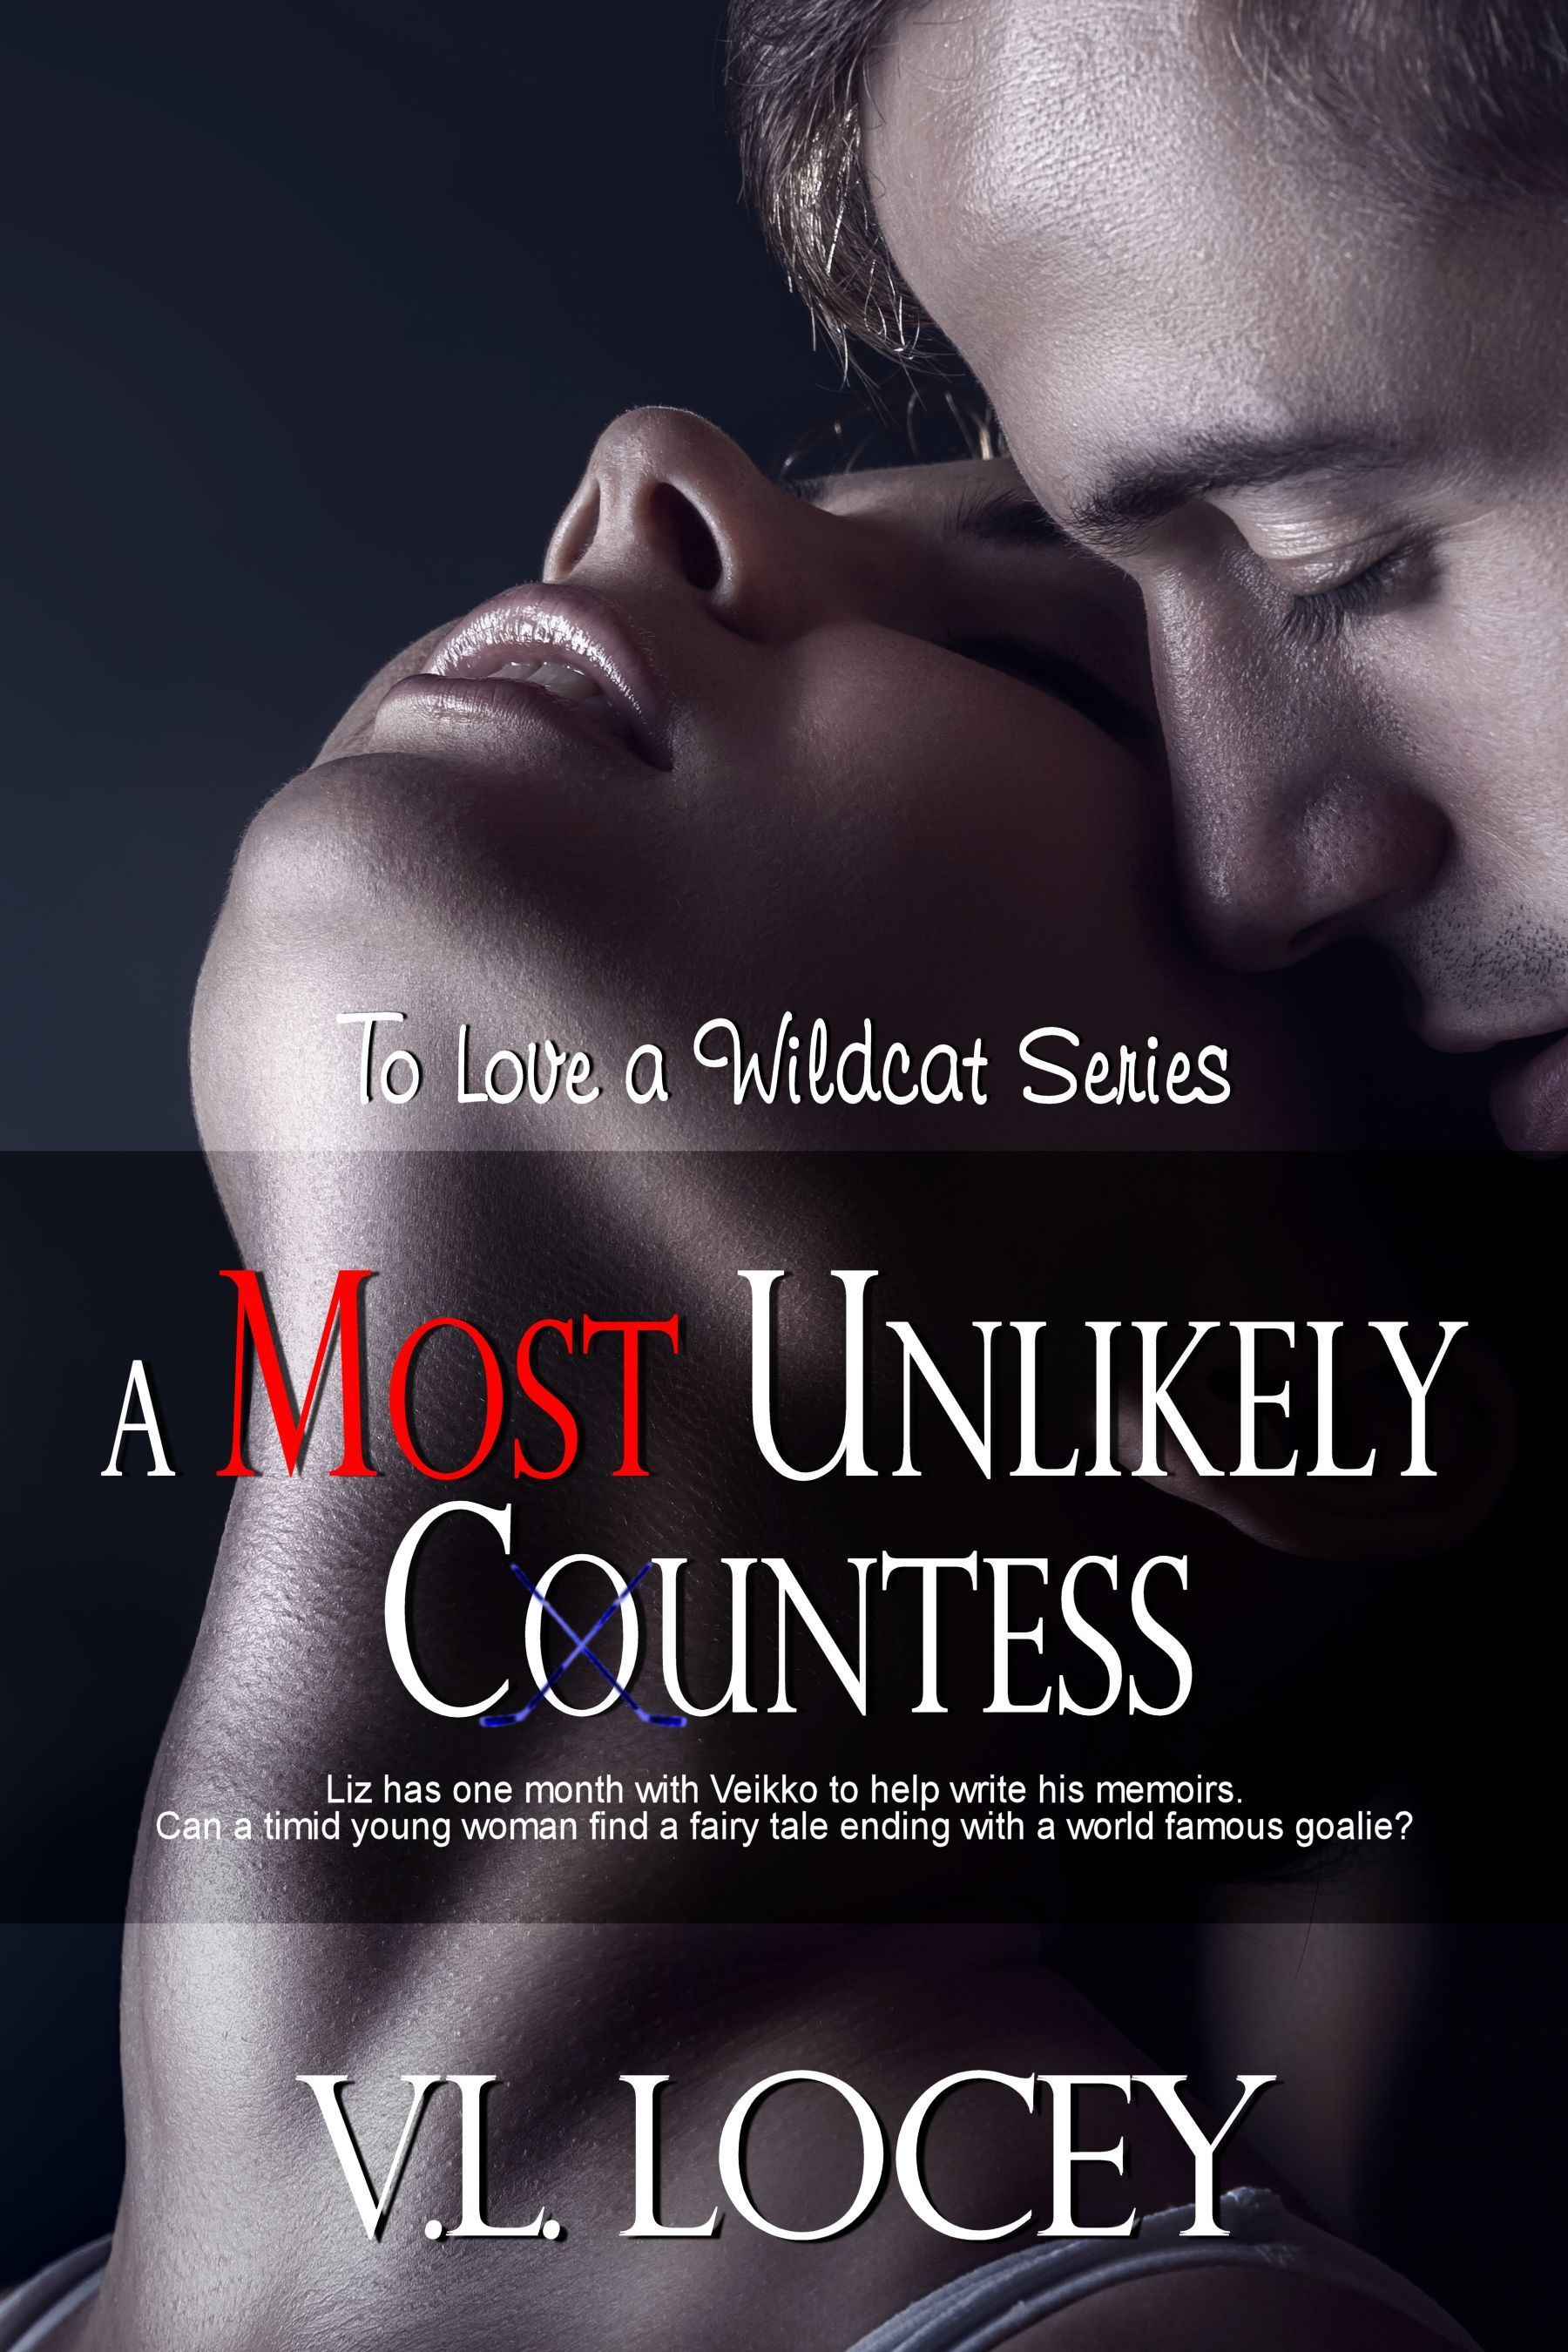 A Most Unlikely Countess (To Love a Wildcat 2) V.L. Locey